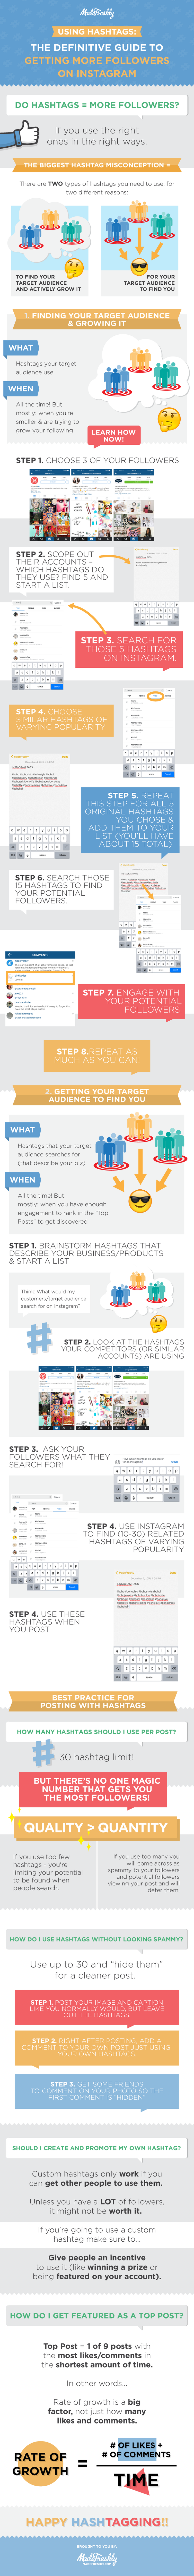 Using-Instagram-Hashtags